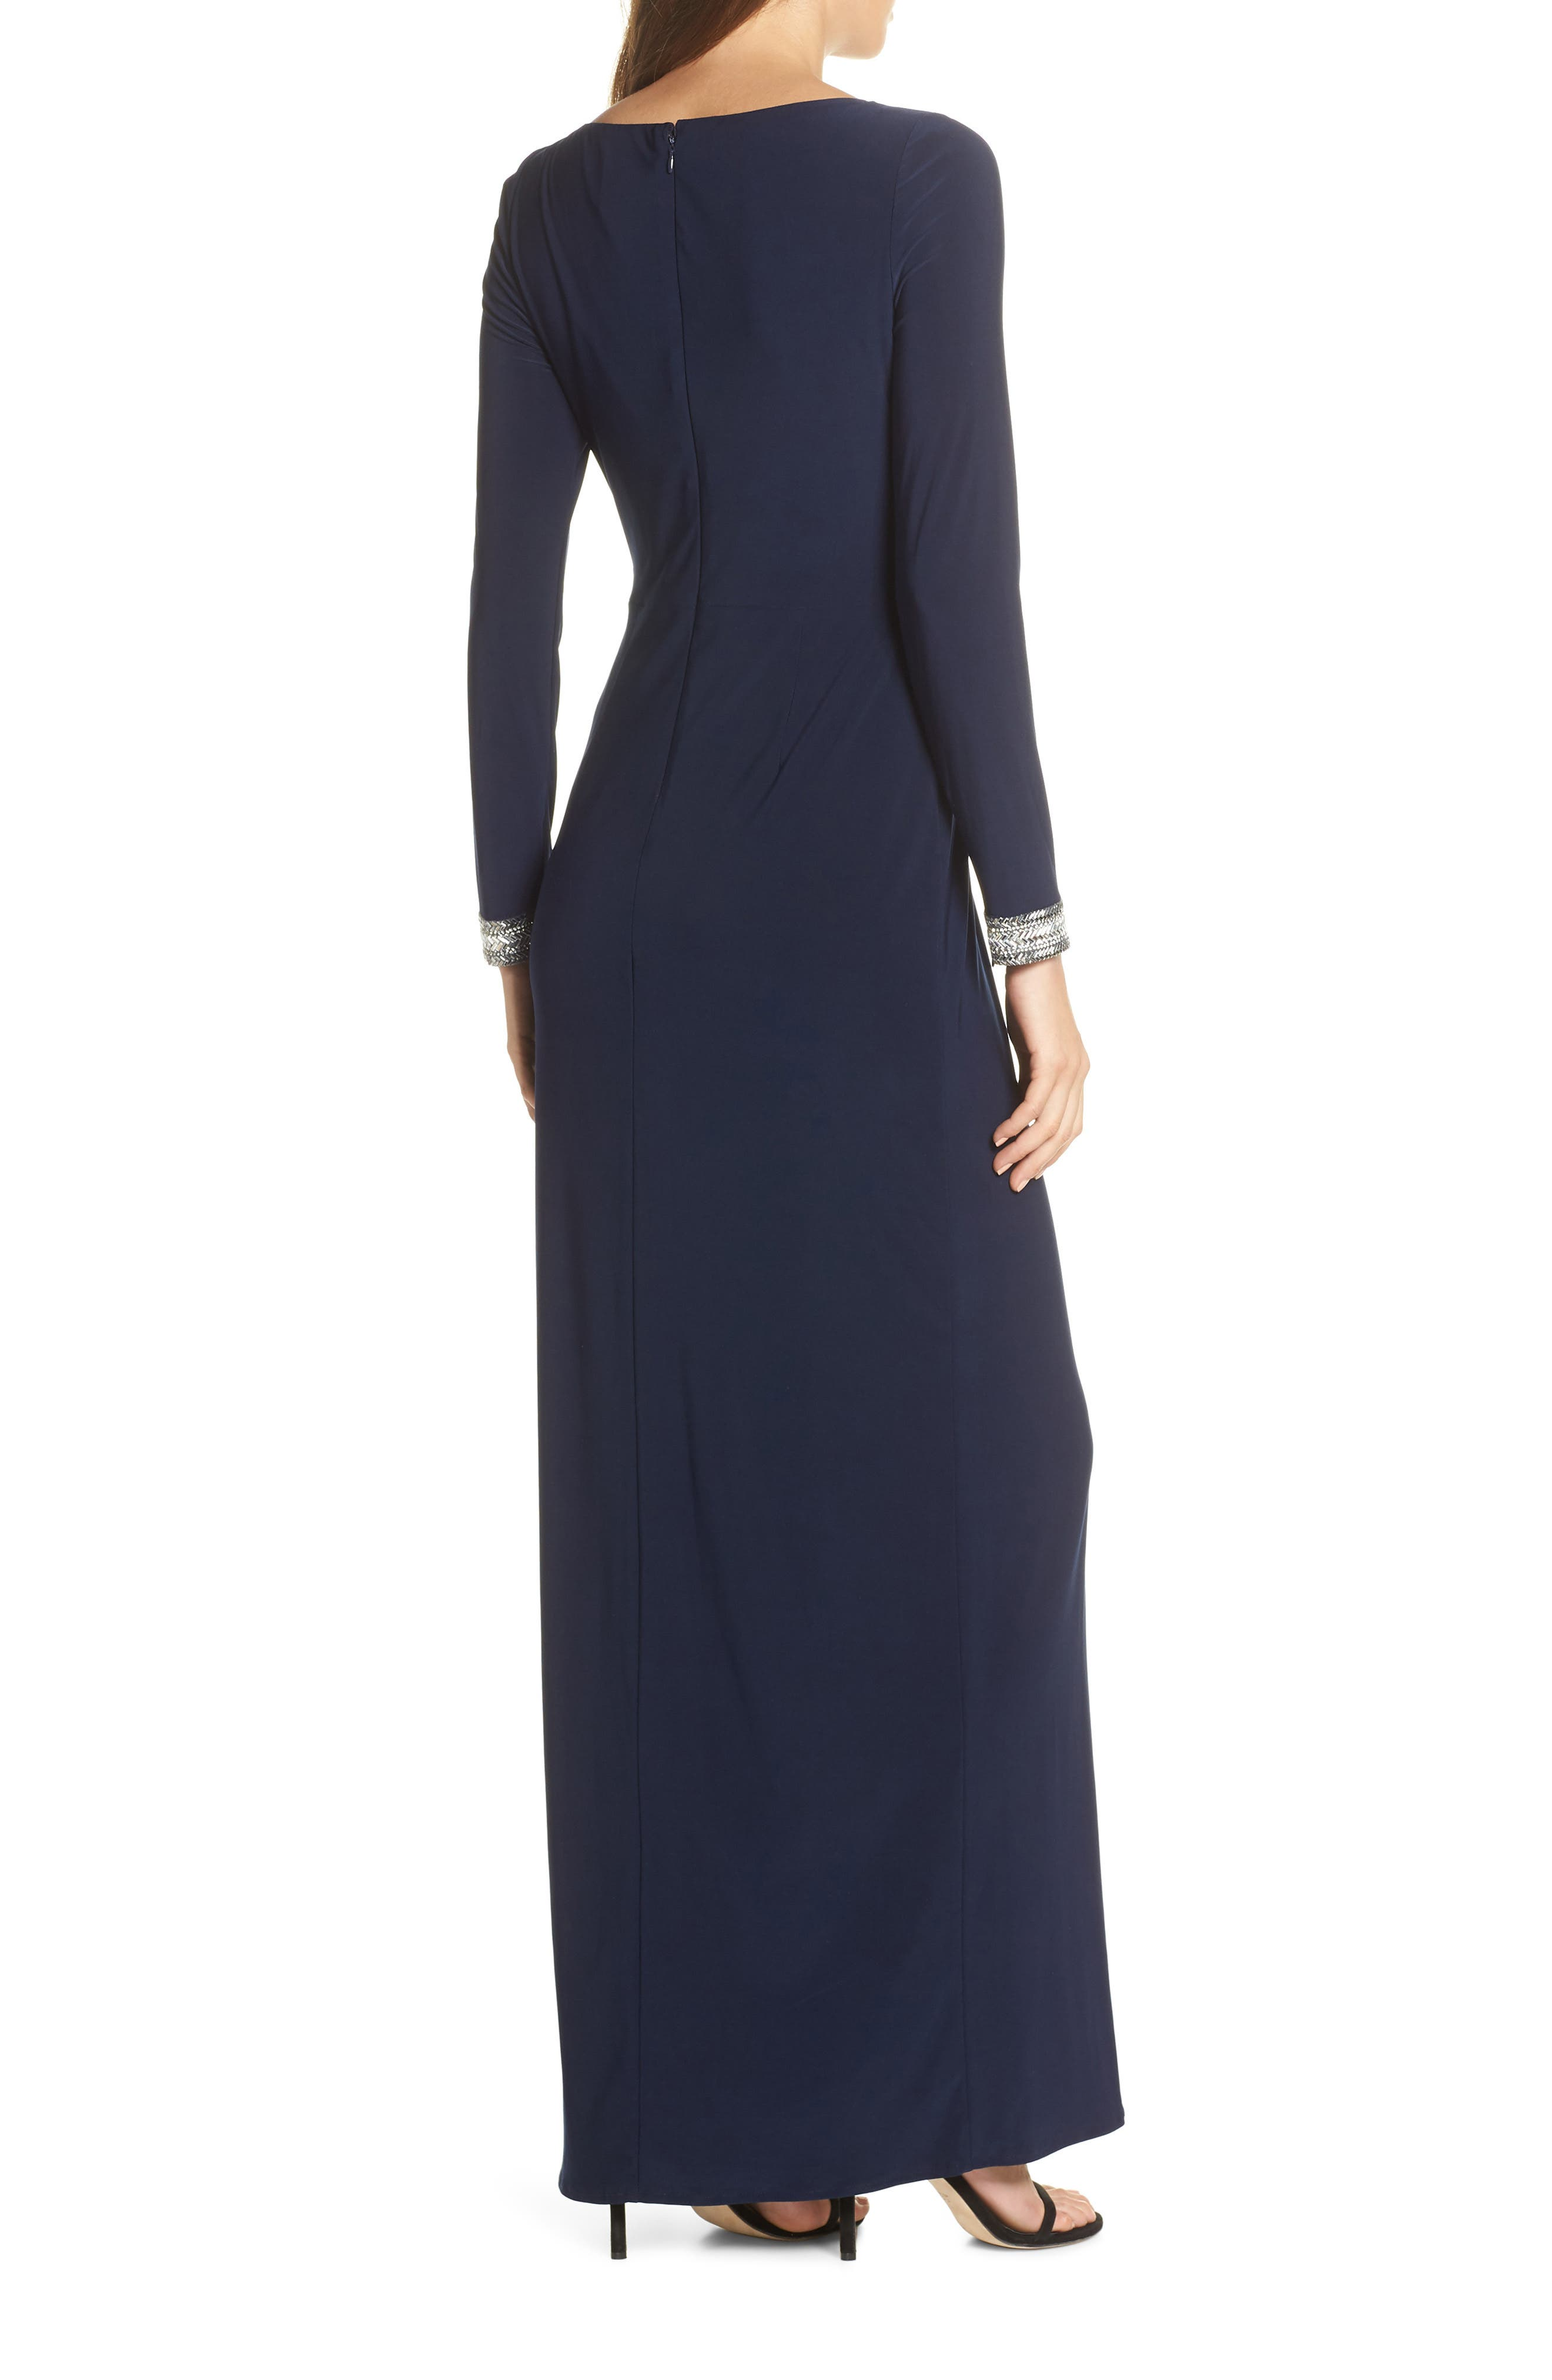 VINCE CAMUTO, Beaded Cuff Ruched Jersey Dress, Alternate thumbnail 2, color, NAVY